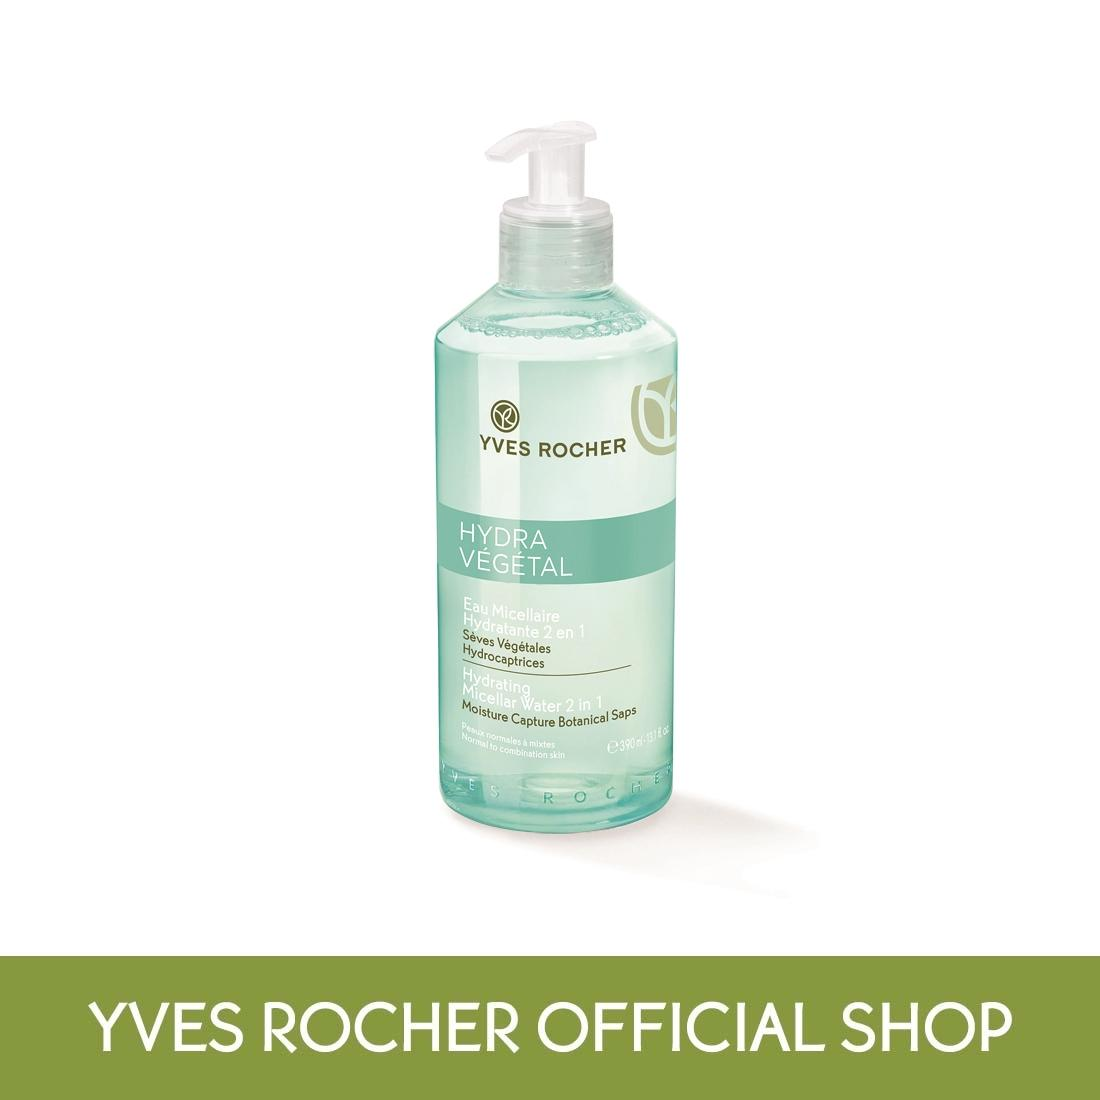 Compare Price Yves Rocher Hydra Vegetal Hydrating Micellar Water 2 In 1 390Ml On Singapore